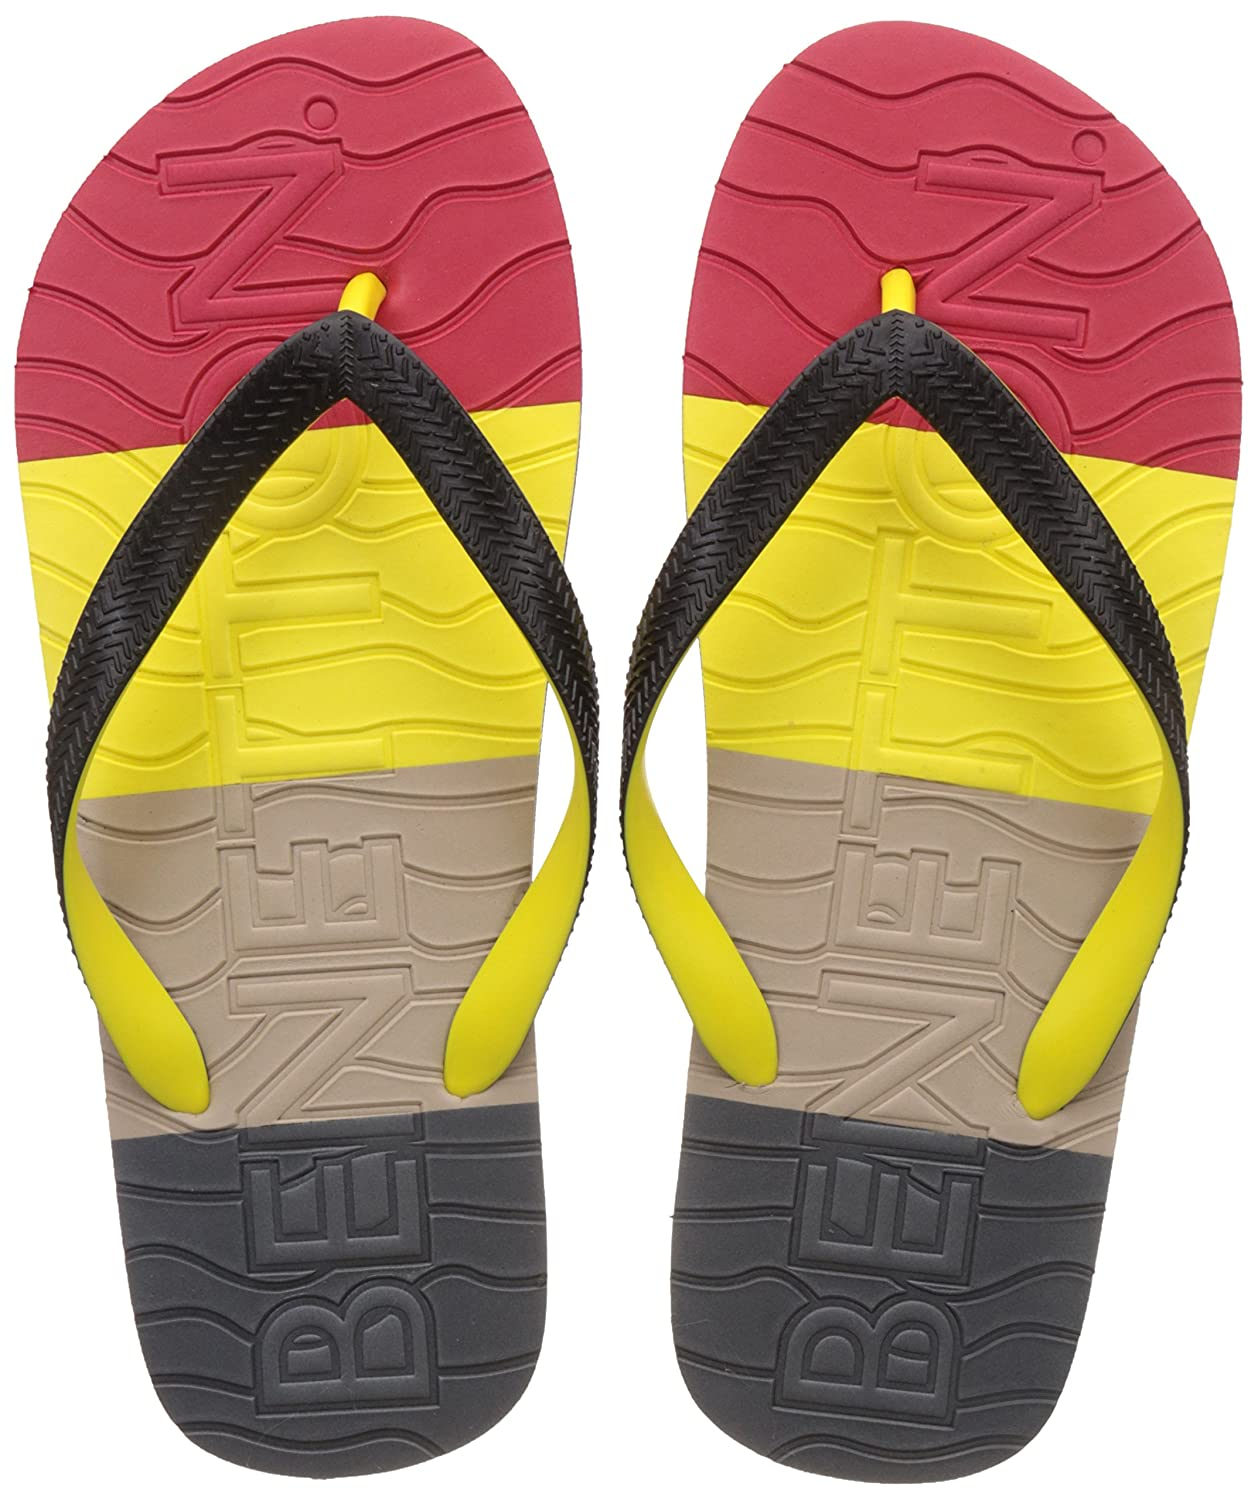 3e1fe39d5 United Colors of Benetton Men s Multicolor Flip-Flops and House Slippers -  9 UK India (43 EU)  Buy Online at Low Prices in India - Amazon.in